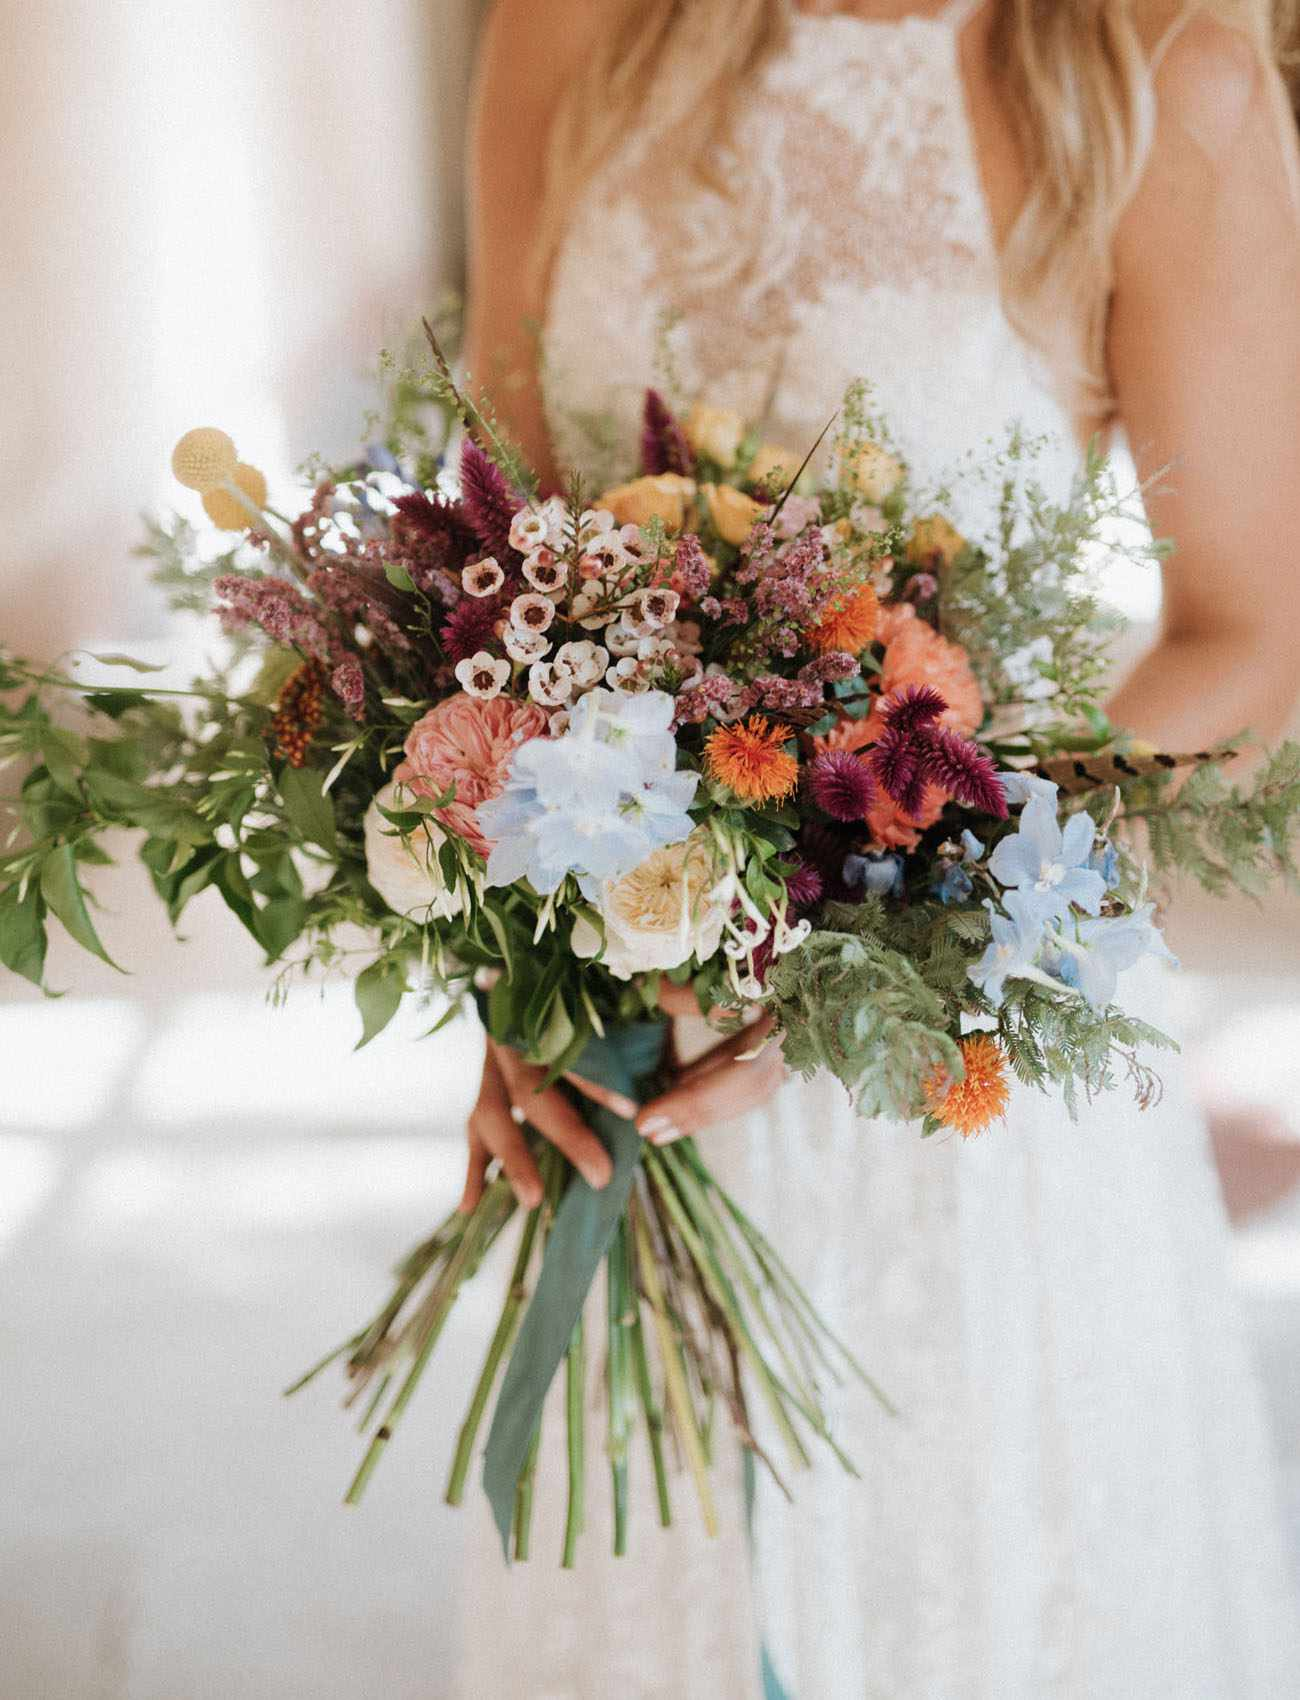 Wildflower bouquet with long stems